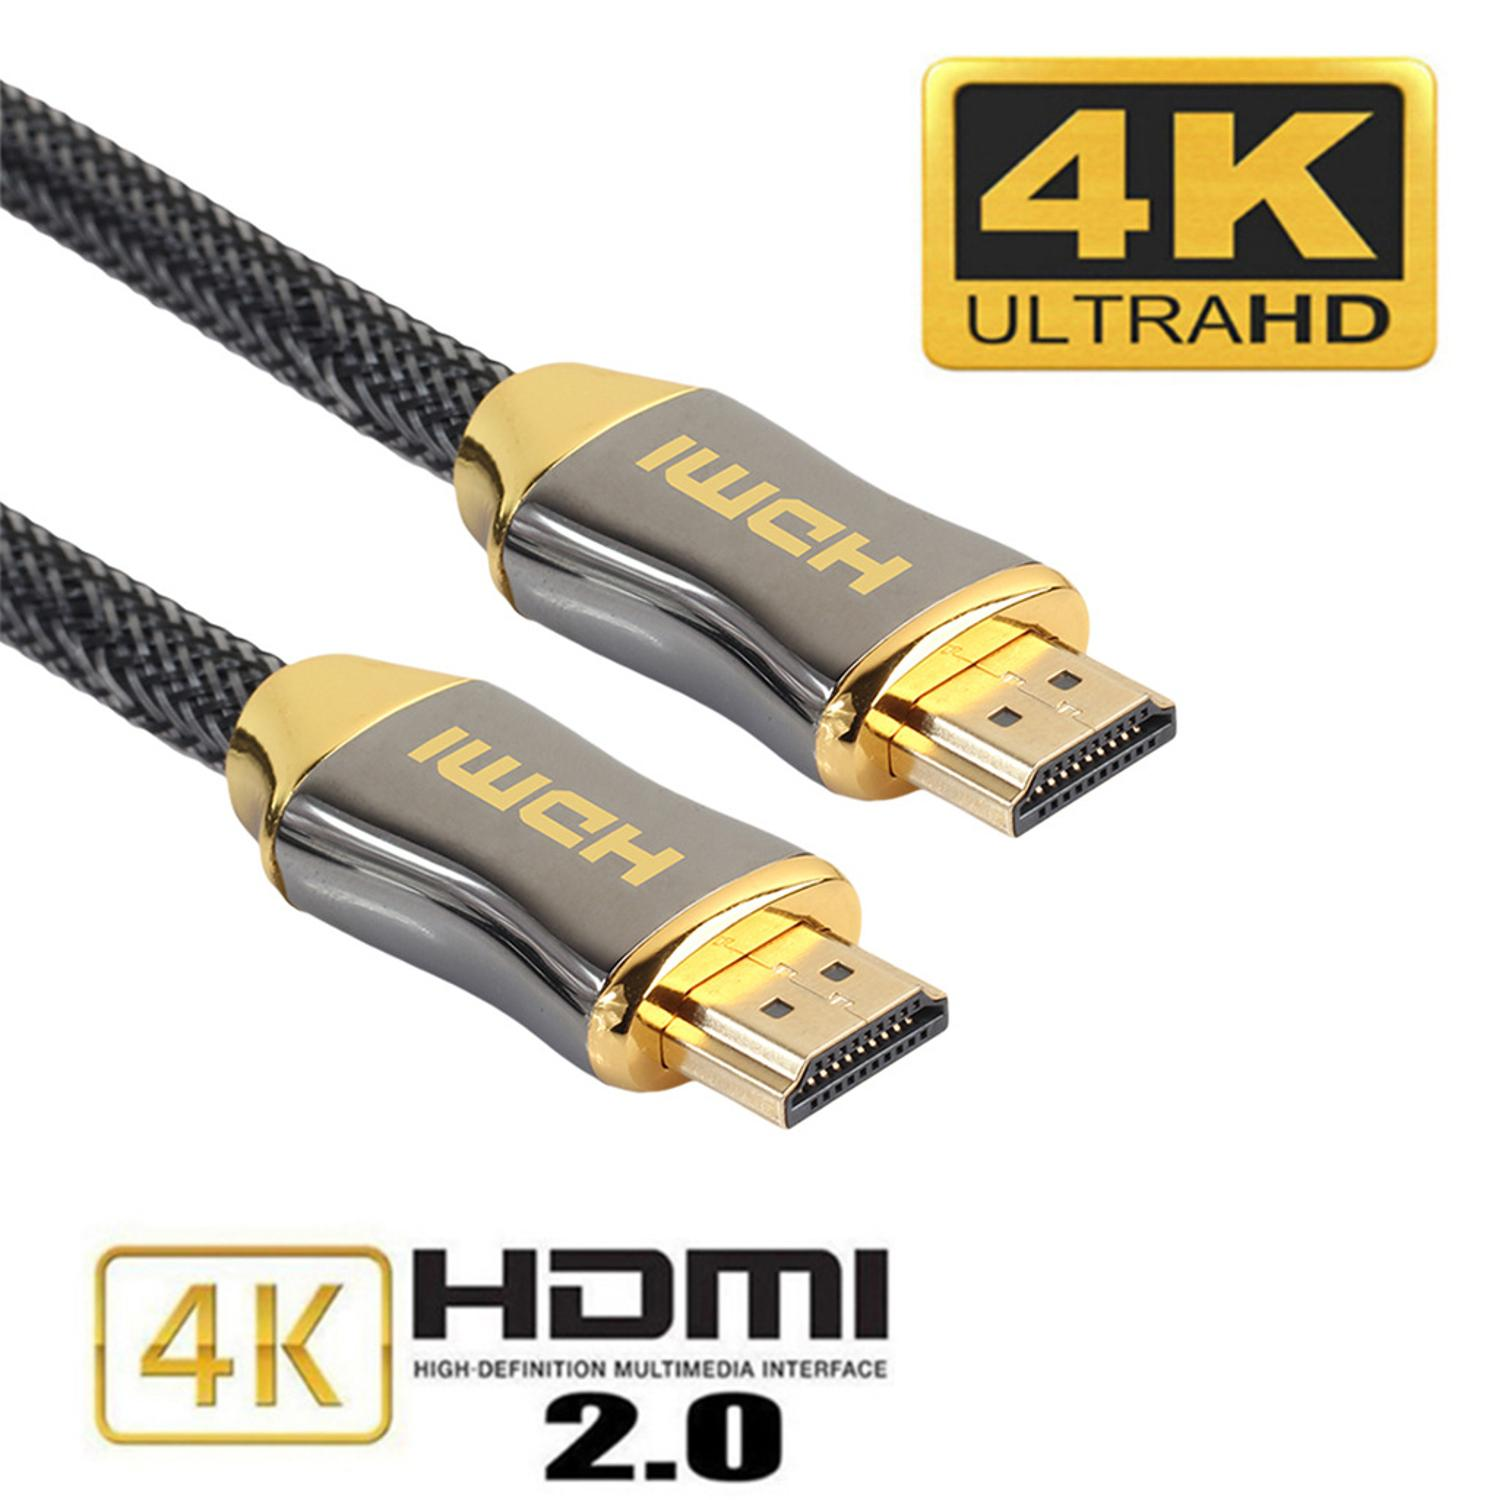 1M 2M 3M 5M <font><b>10M</b></font> 15M <font><b>4K</b></font> 60Hz <font><b>HDMI</b></font> To <font><b>HDMI</b></font> Cable High Speed 2.0 Golden Plated Connection Cable Cord For UHD FHD 3D Xbox PS3 PS4 TV image